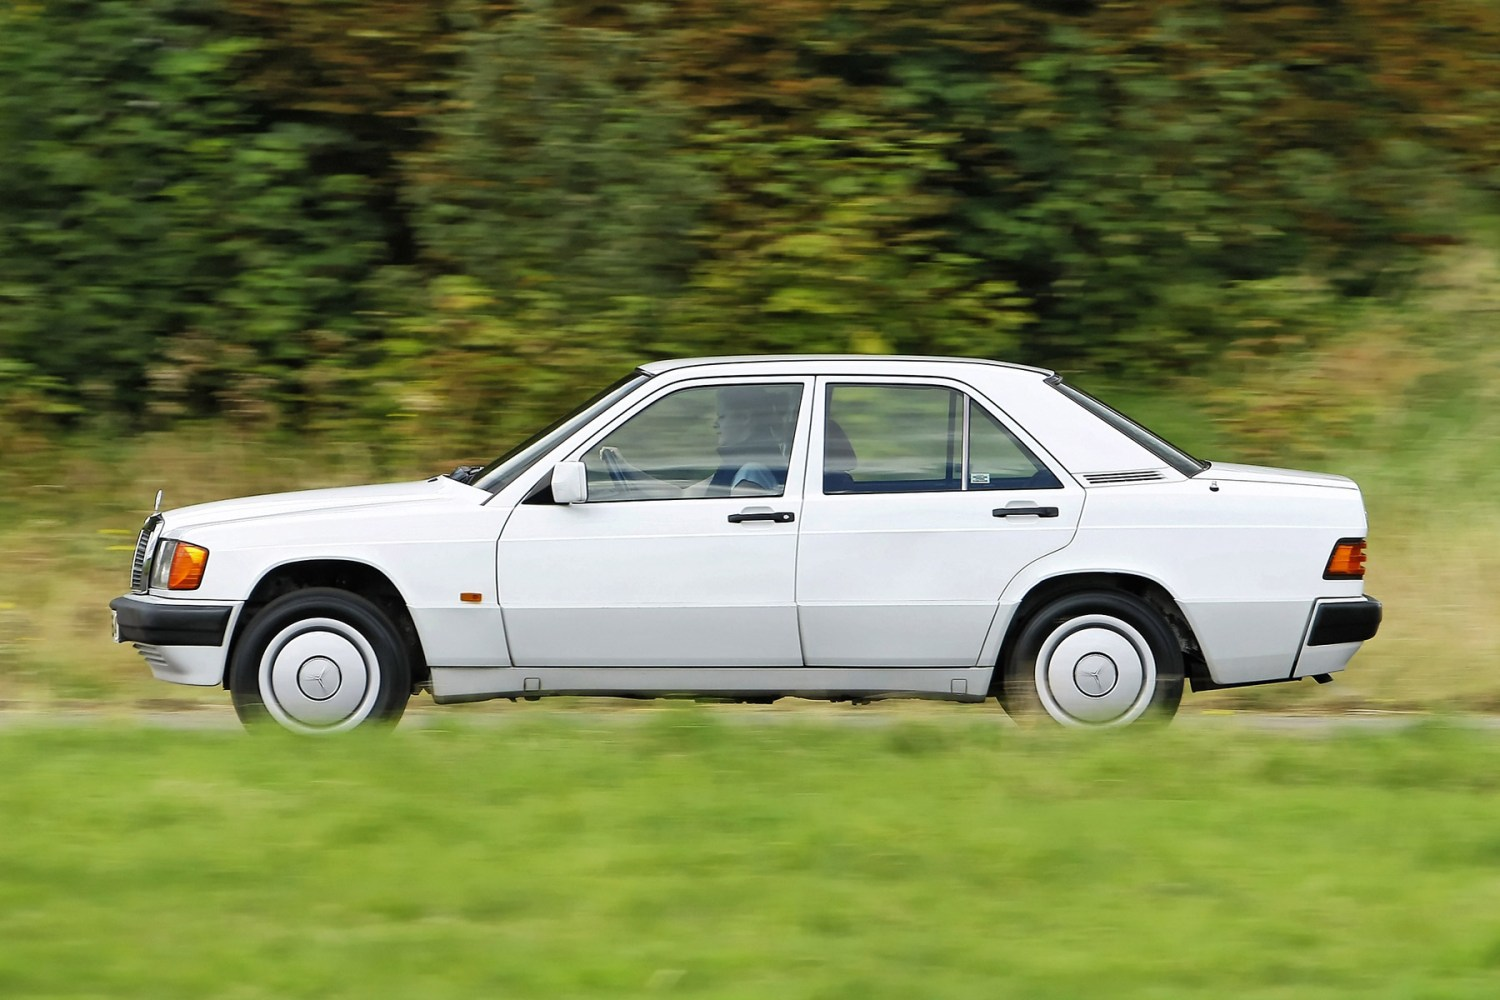 Mercedes-Benz 190E: what's it like to drive?